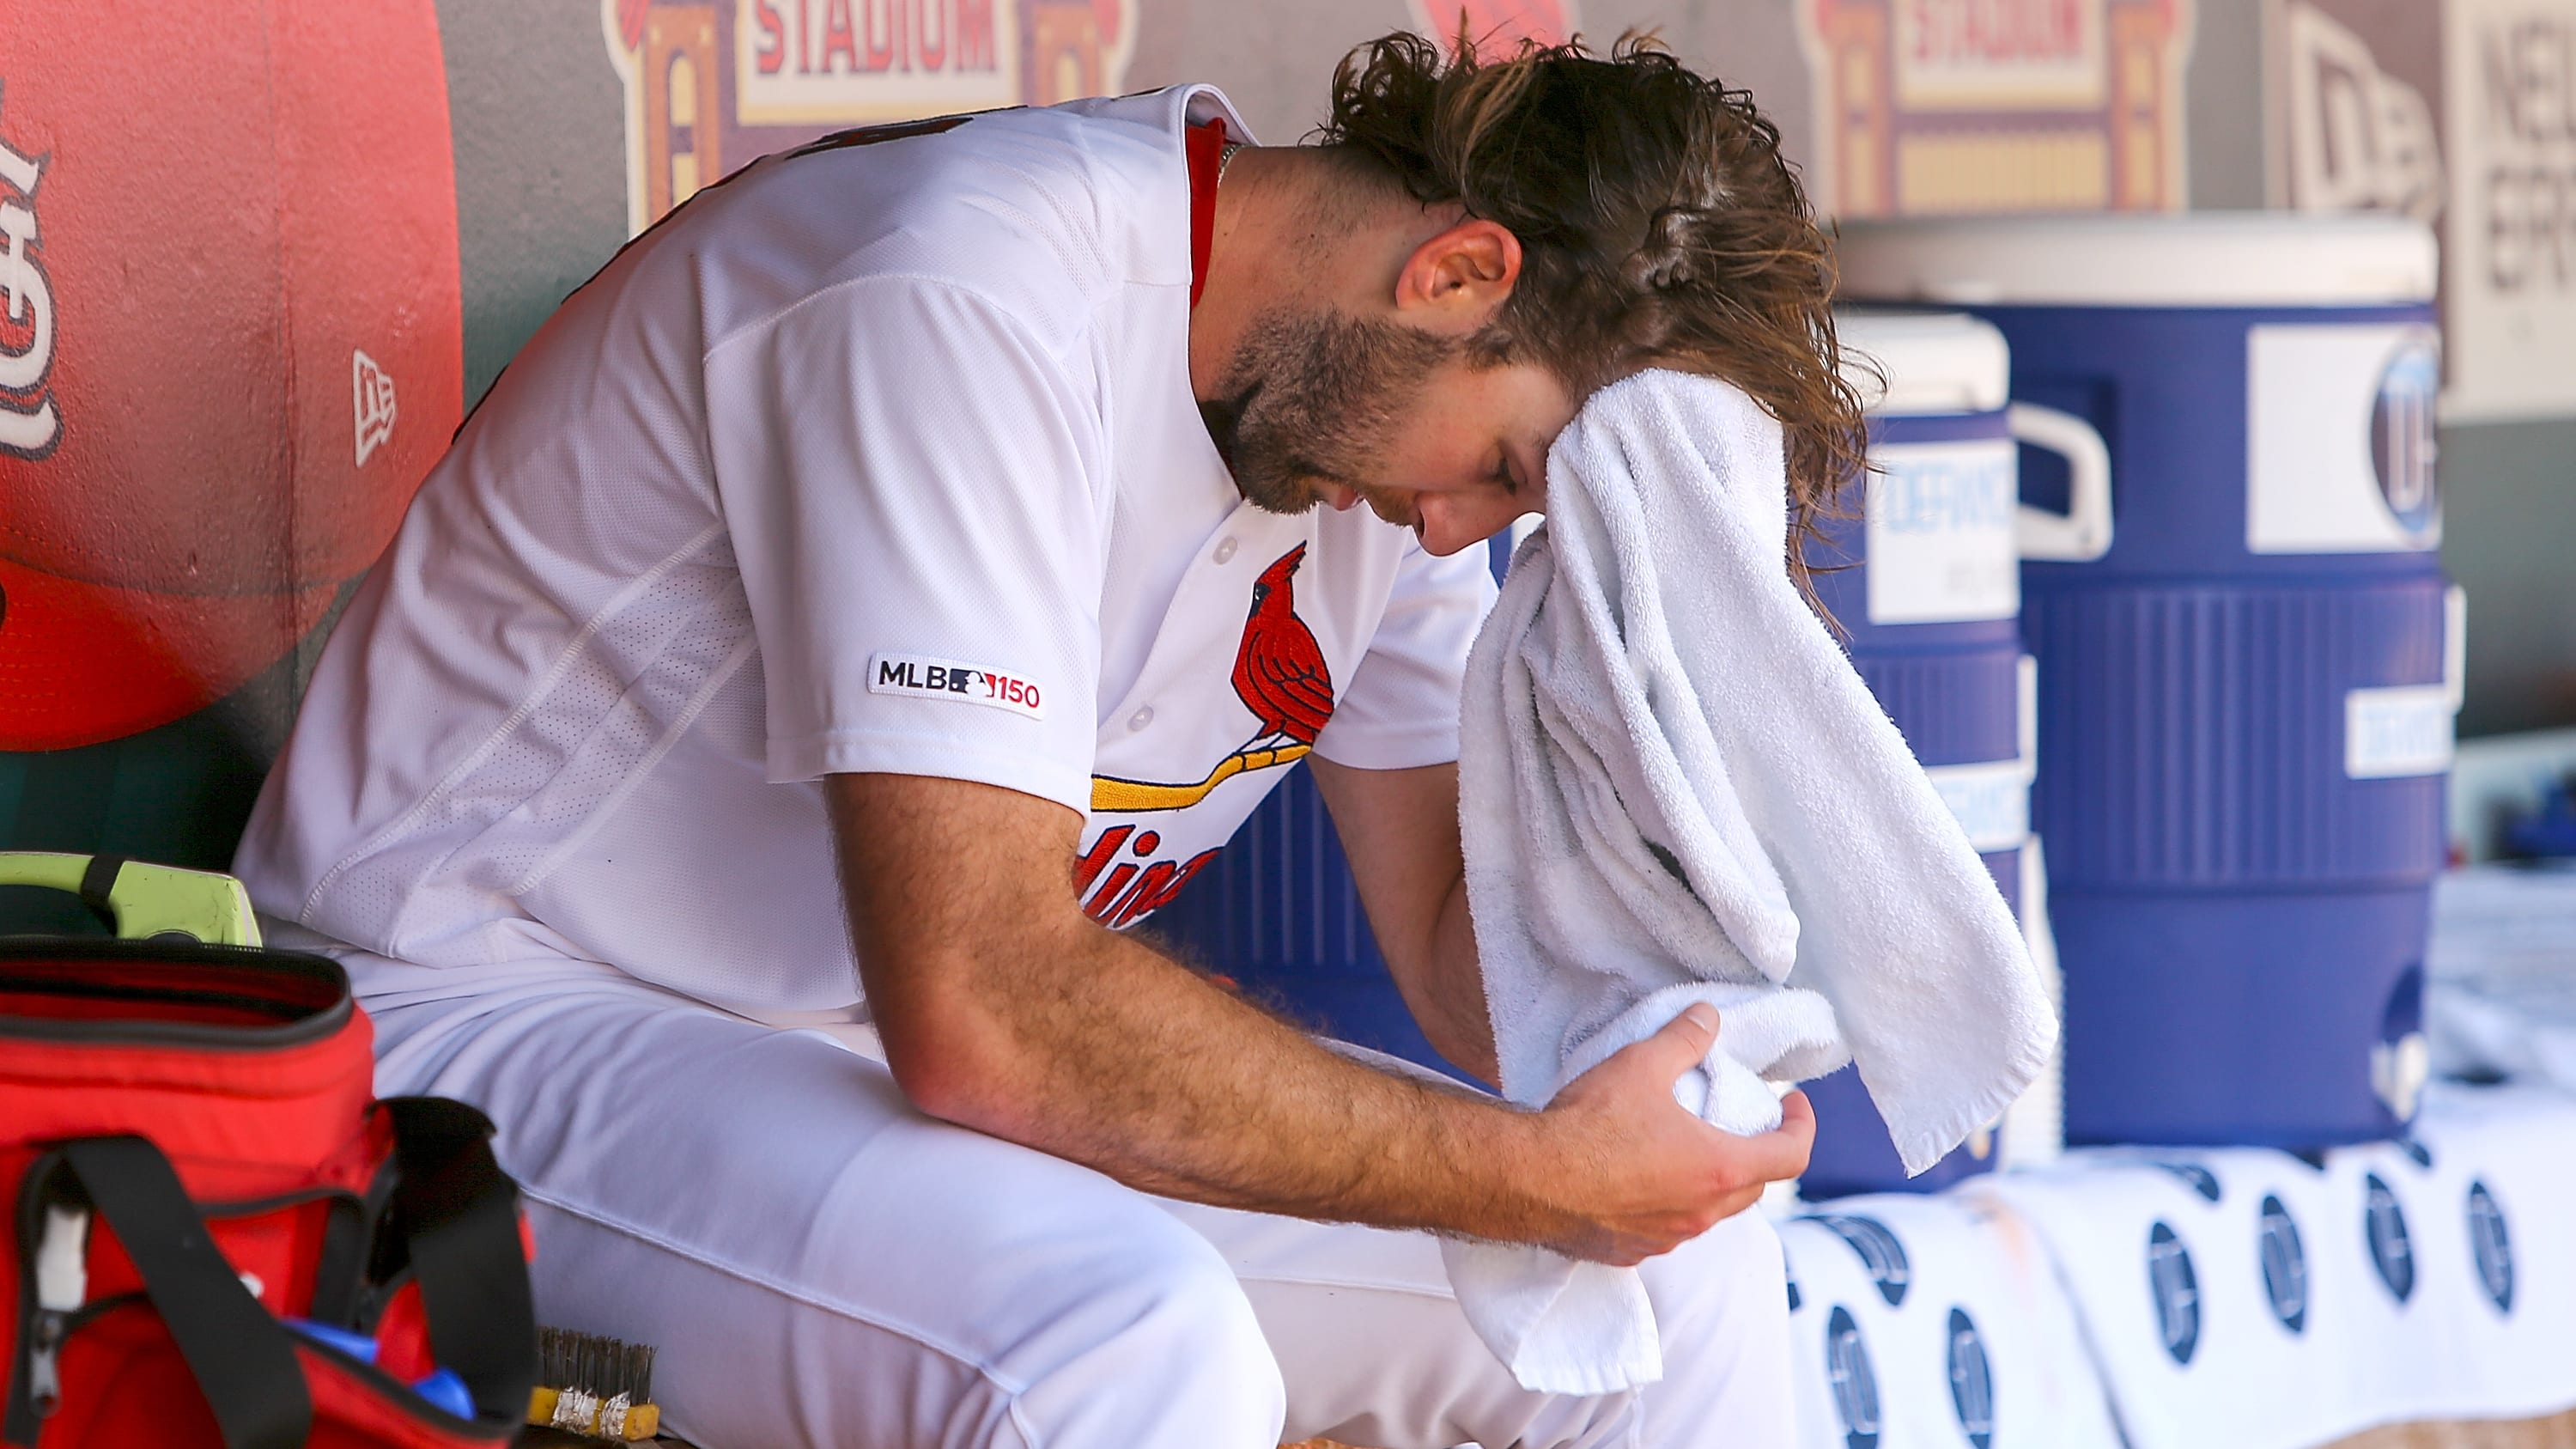 ST. LOUIS, MO - MAY 22: Michael Wacha #52 of the St. Louis Cardinals sits in the dugout after pitching the in the fourth inning during Game One of a double headeragainst the Kansas City Royals at Busch Stadium on May 22, 2019 in St. Louis, Missouri. (Photo by Scott Kane/Getty Images)